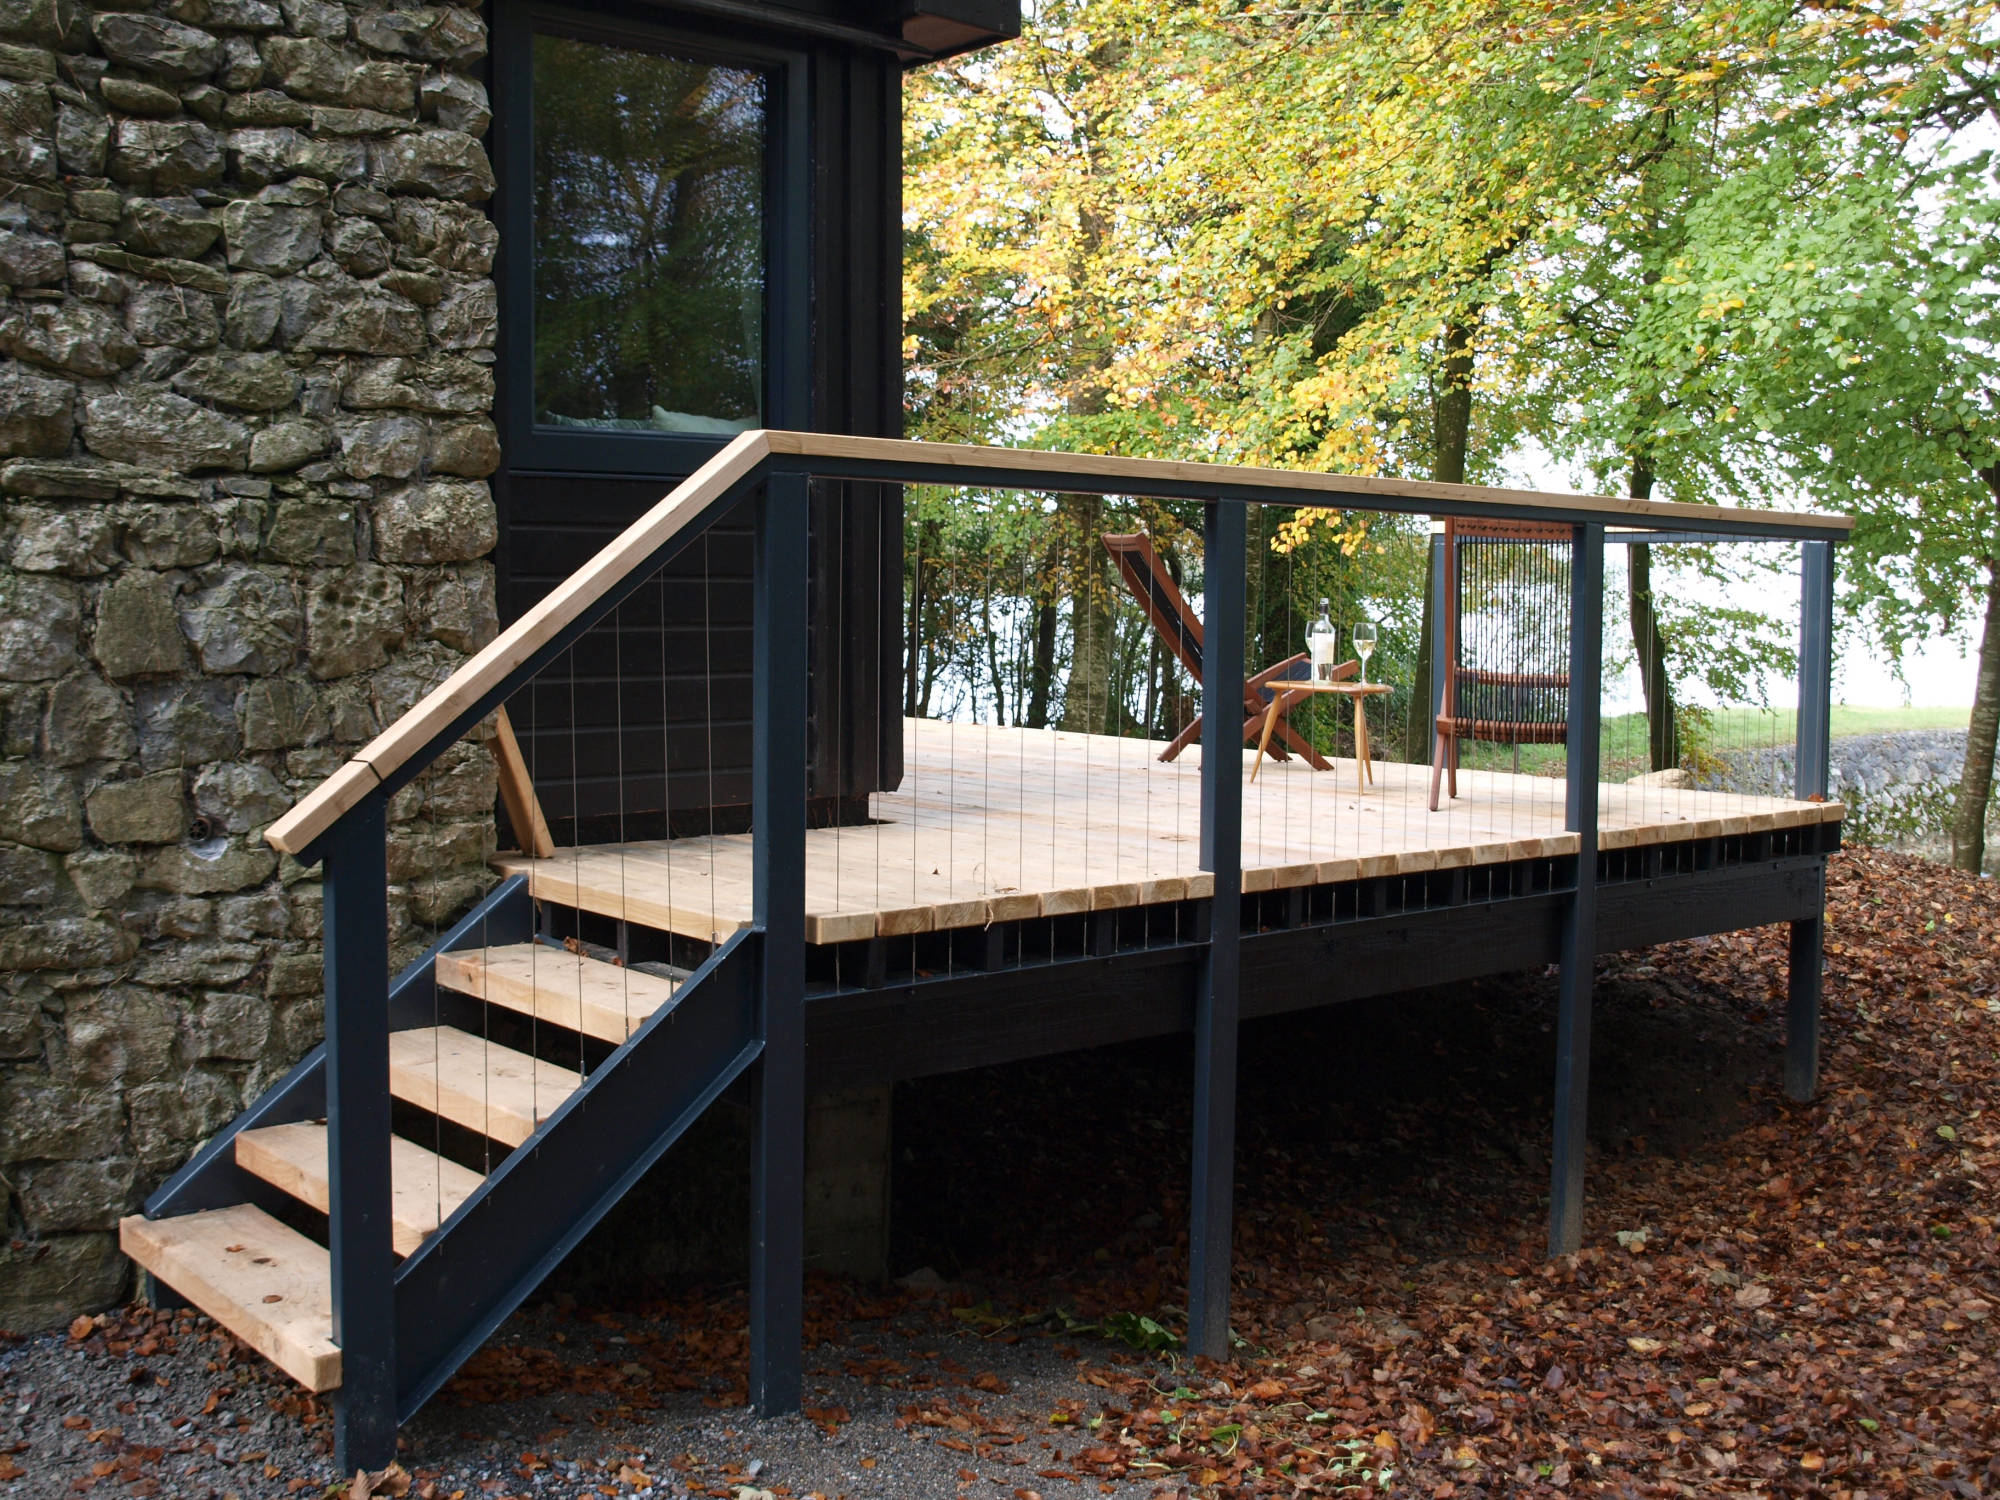 Wire rope balustrade for decking and stairs